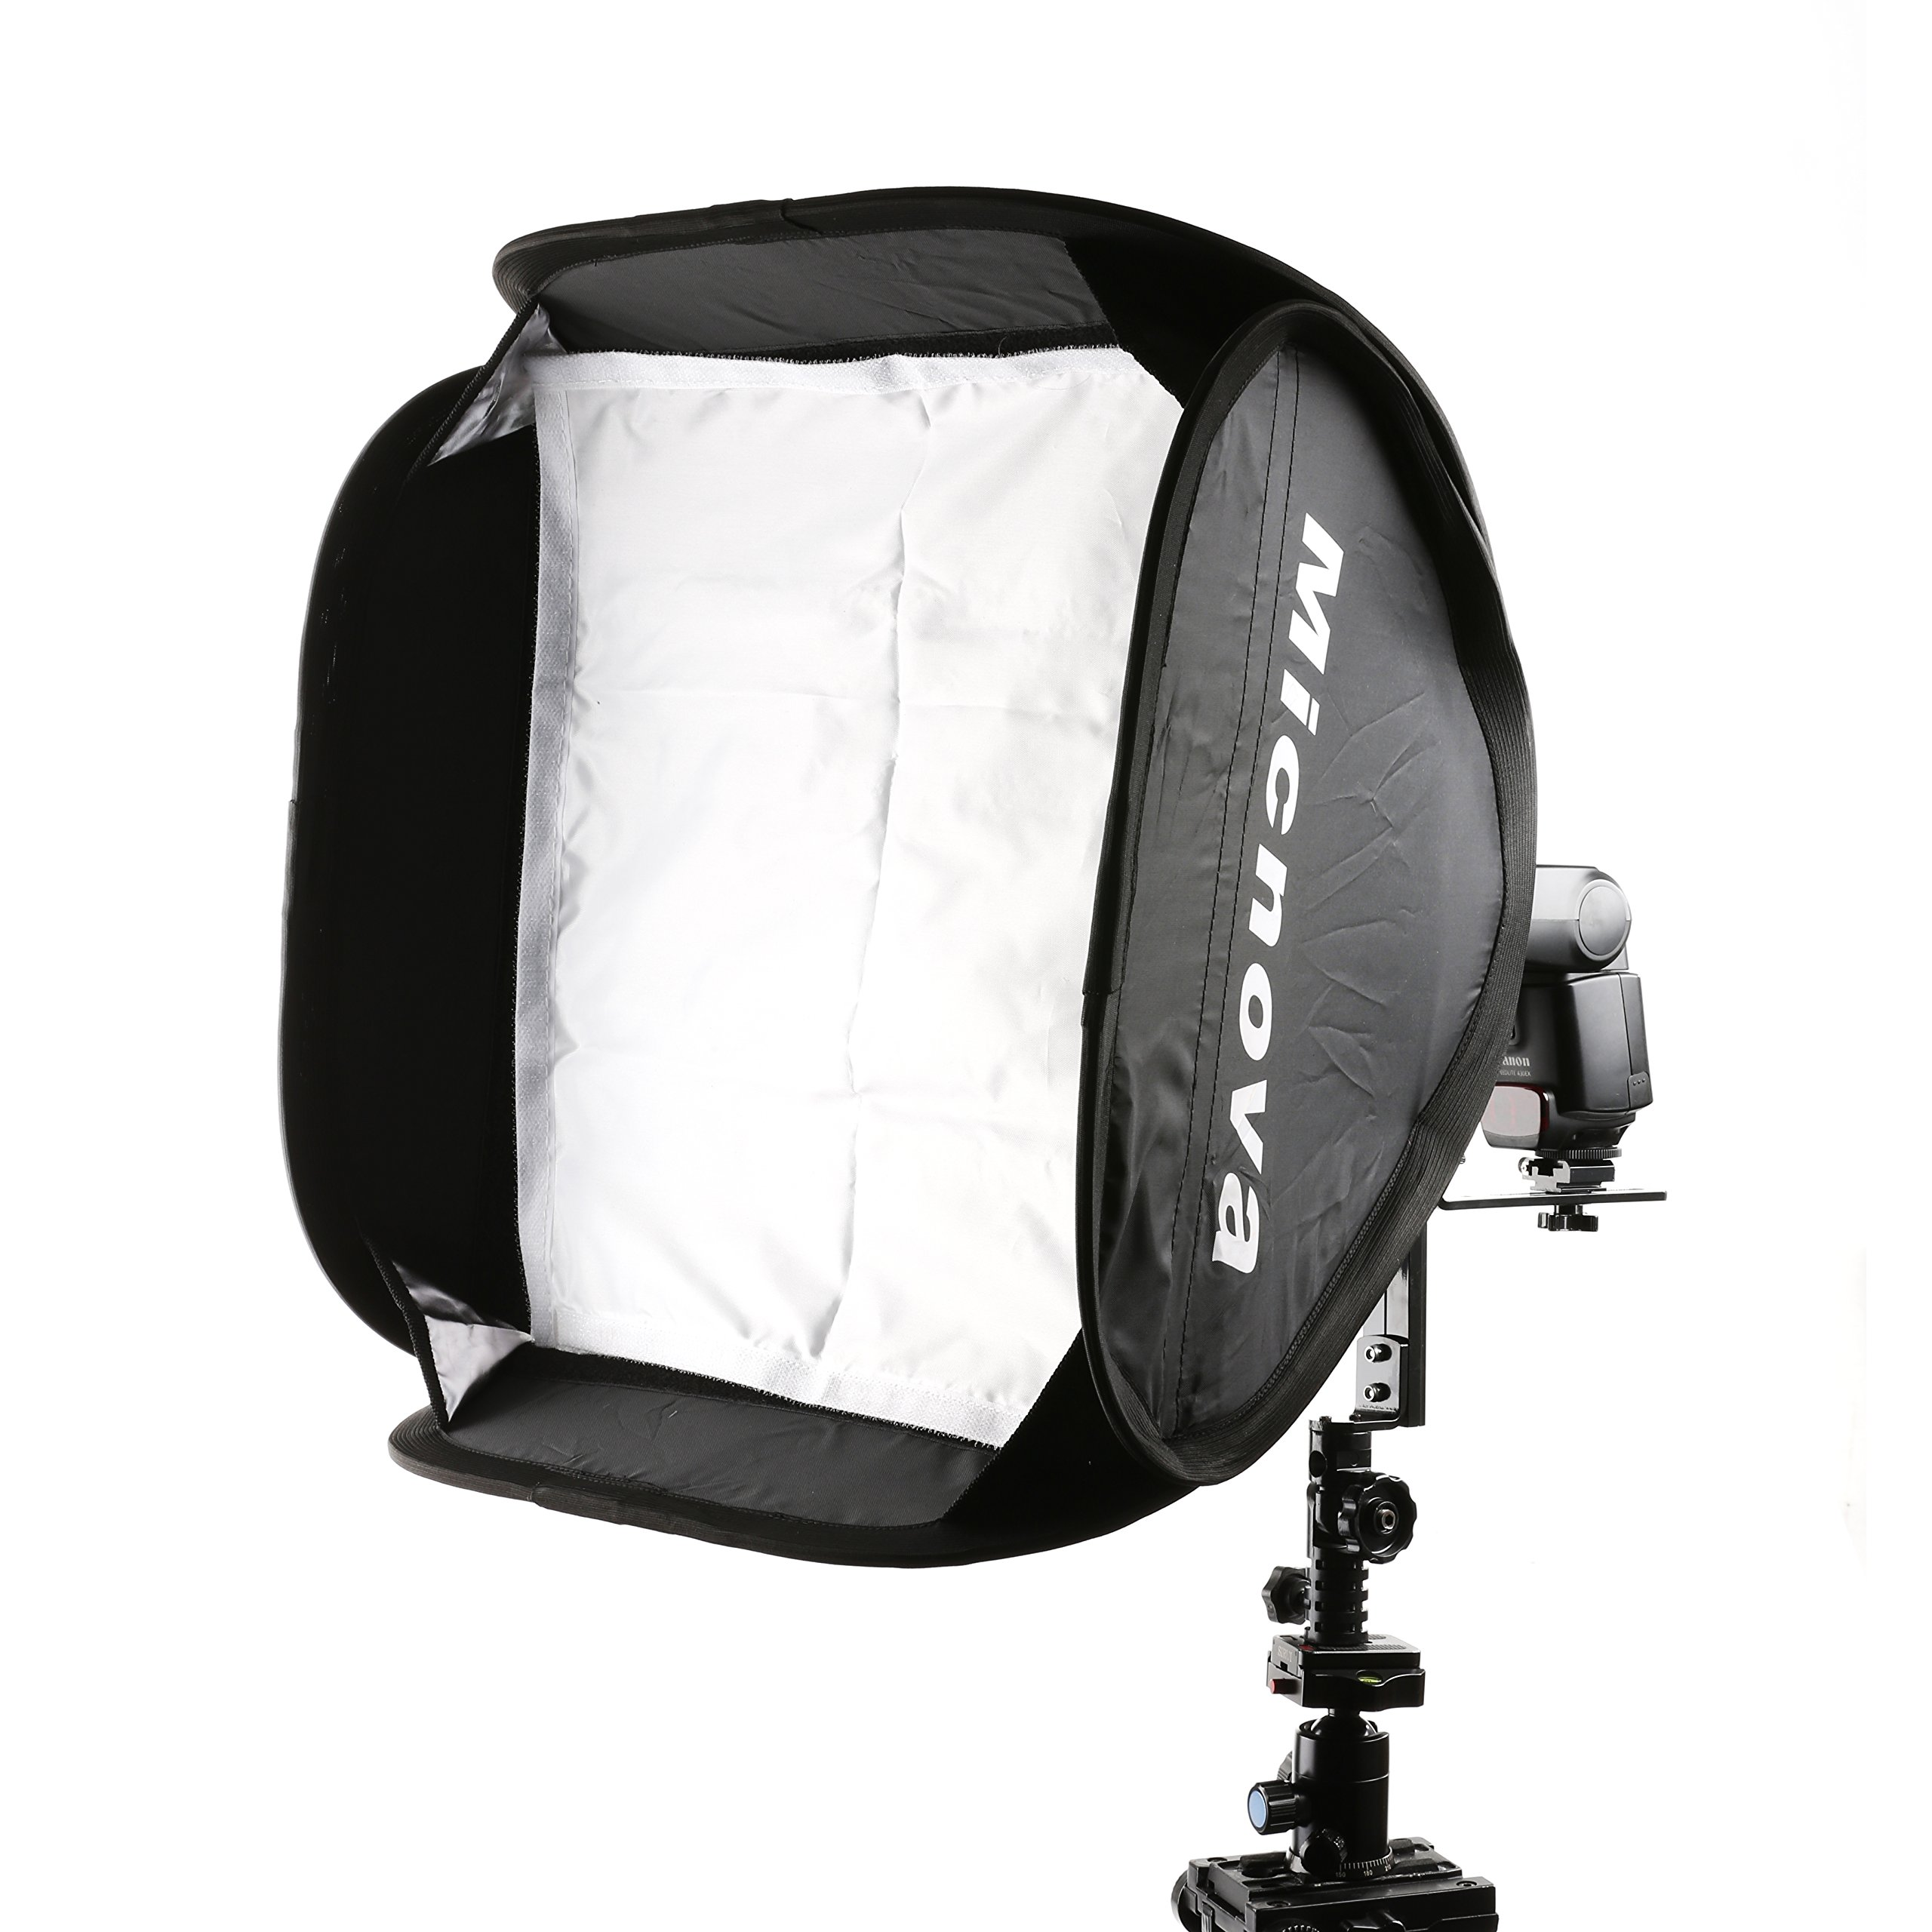 Micnova SB40 16x16'' Softbox Kit with Speedlight L-Type Bracket for all Camera Flashes